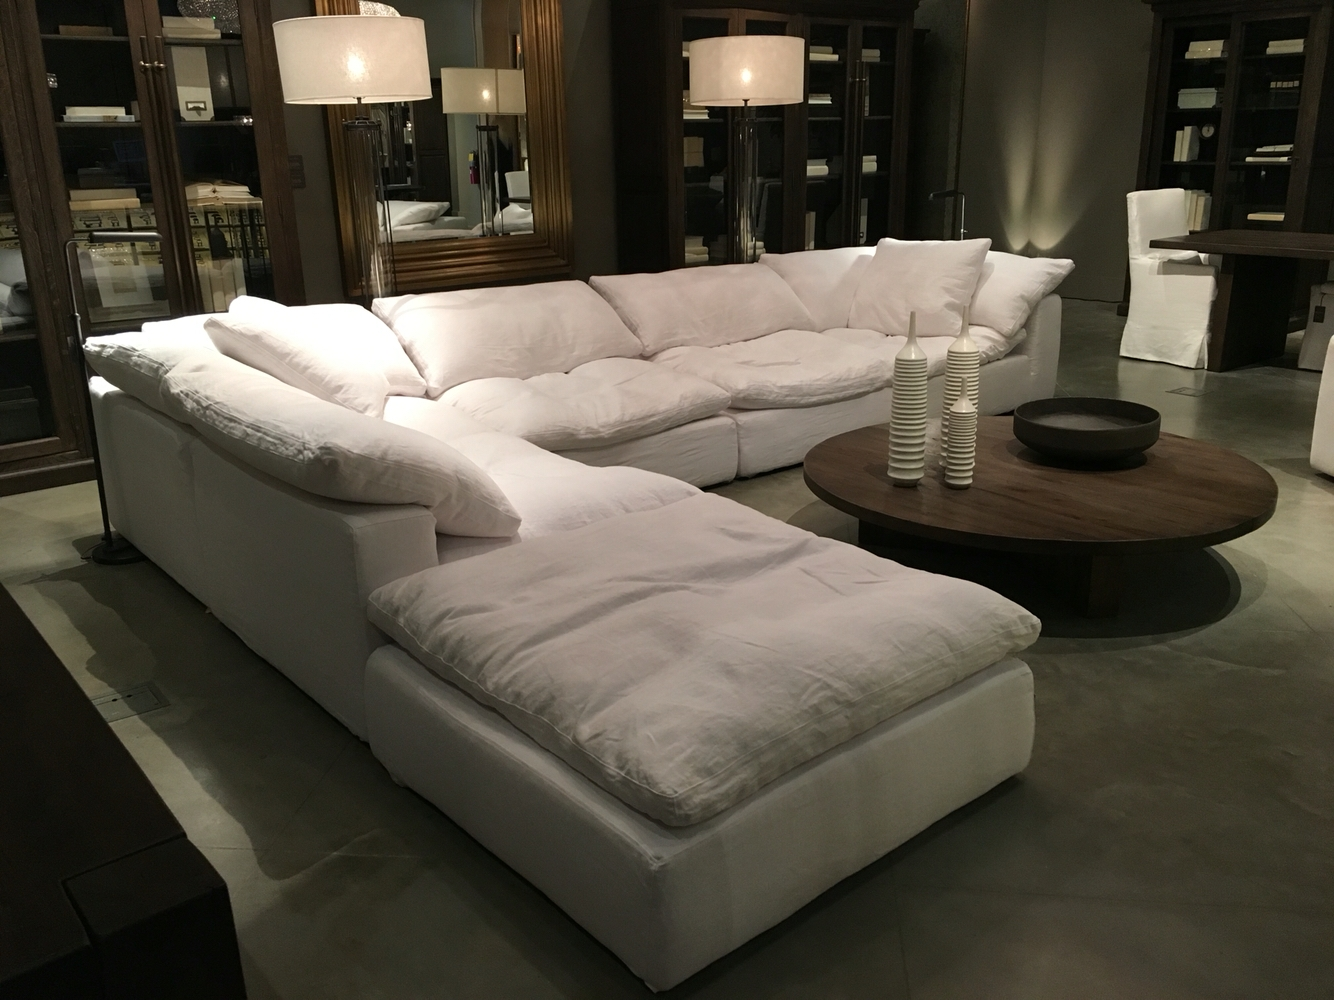 Best 25 Comfy Sectional Ideas On Pinterest Pertaining To Comfy Sectional Sofa (Image 3 of 15)